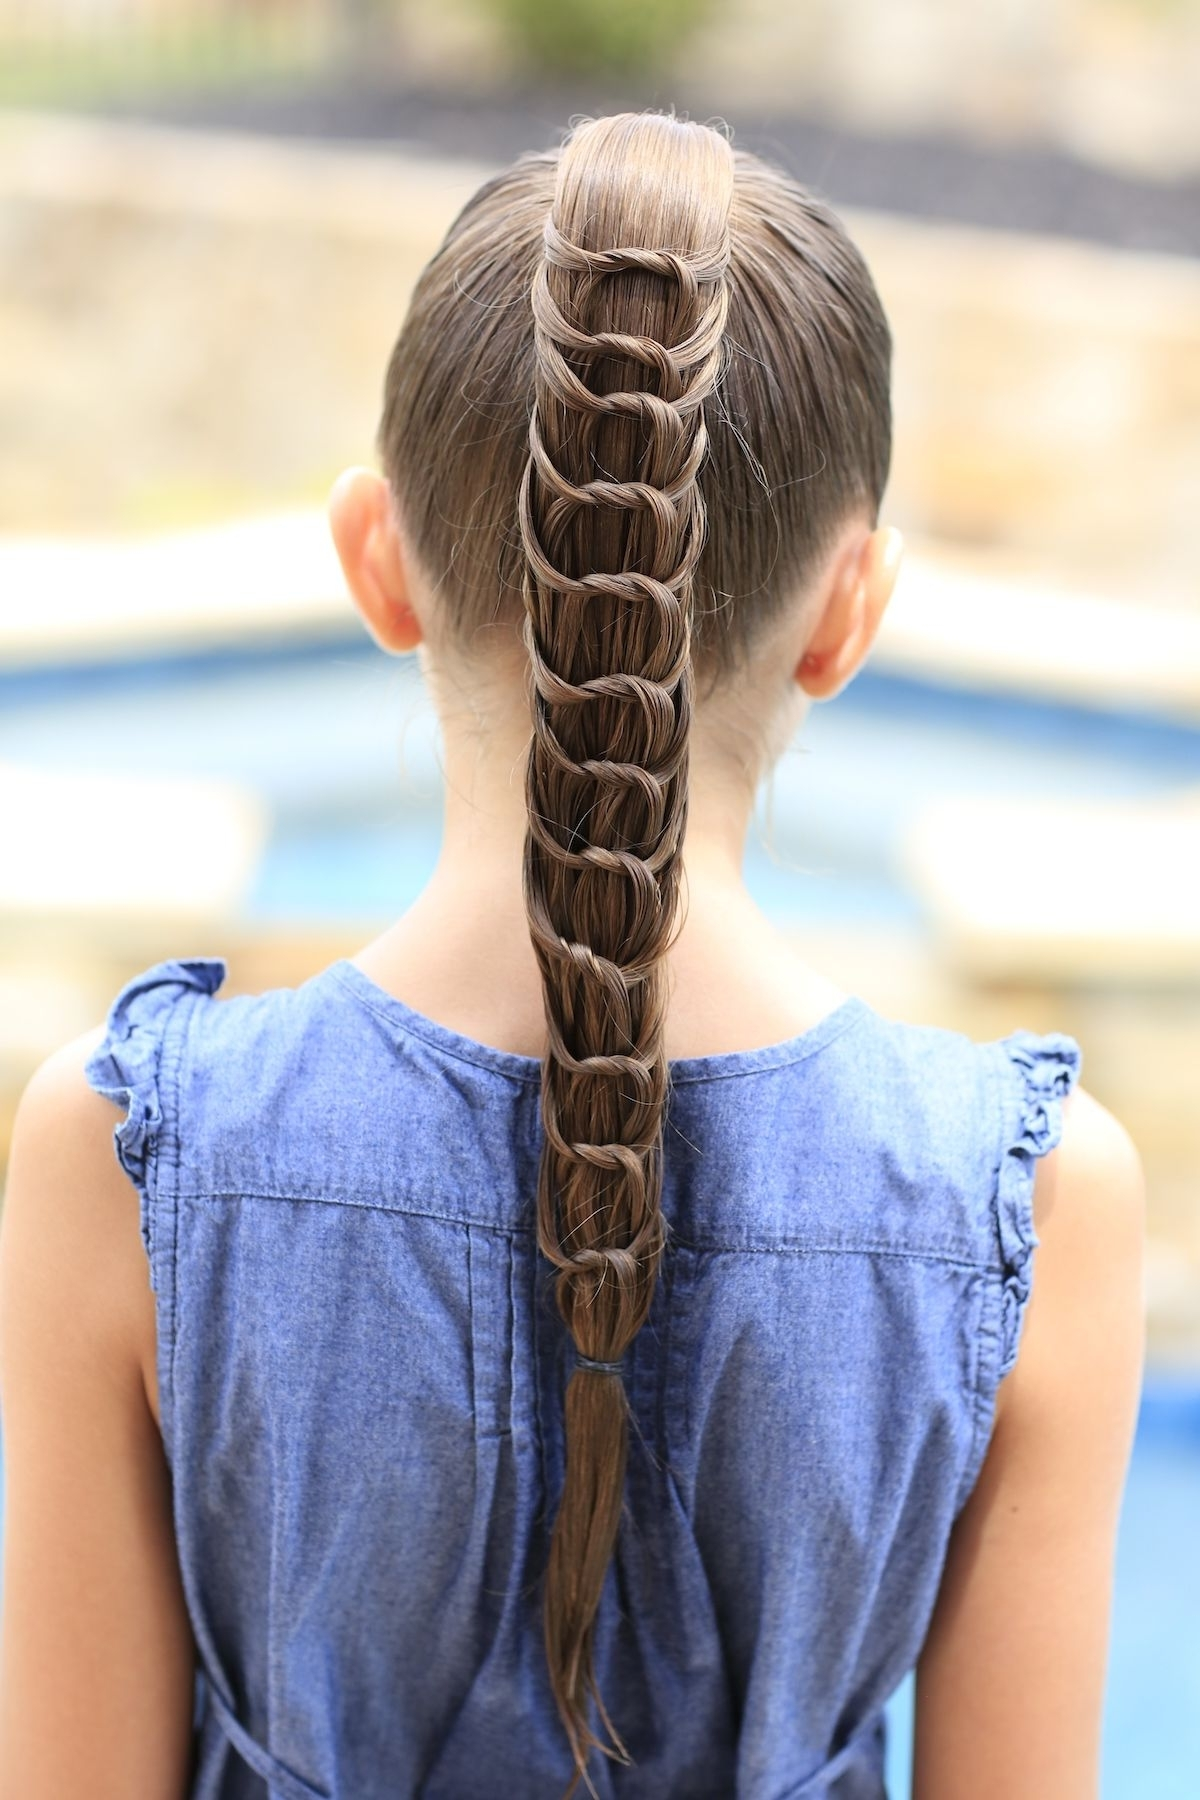 The Knotted Ponytail Hairstyle! So Cute! #cutegirlshairstyles Throughout Well Known Braided And Knotted Ponytail Hairstyles (View 18 of 20)